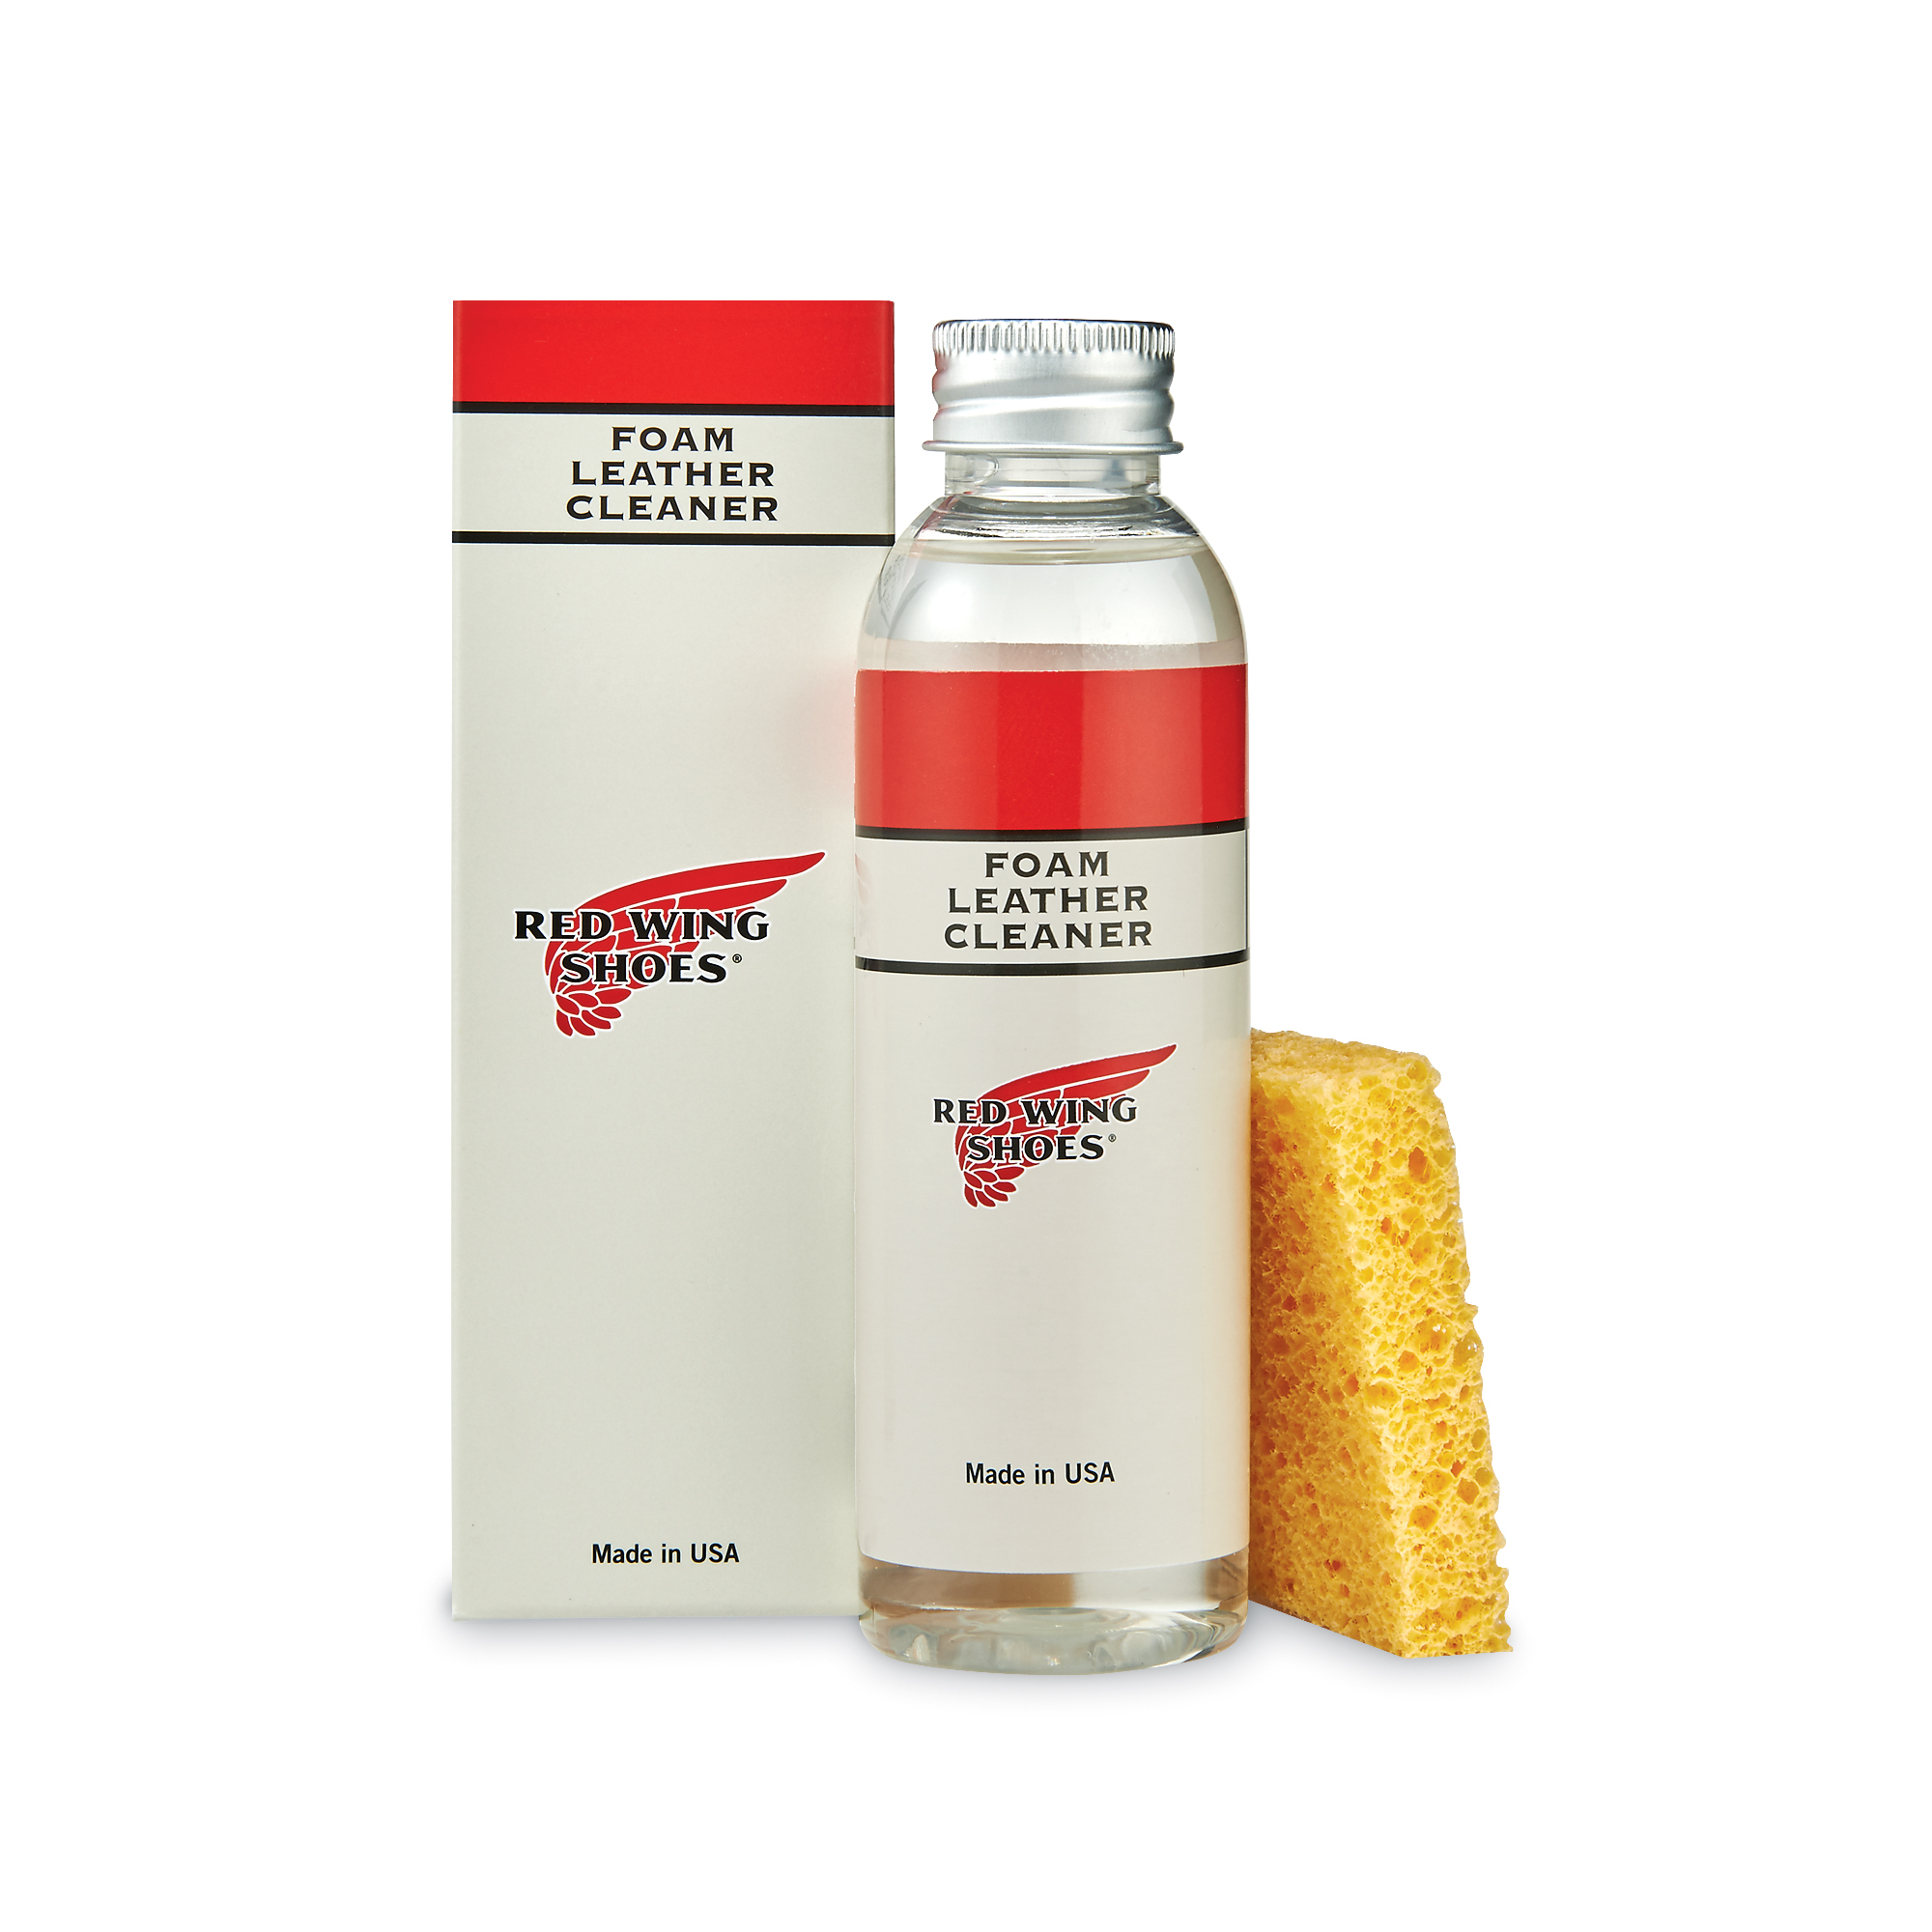 Red Wing - FOAM LEATHER CLEANER